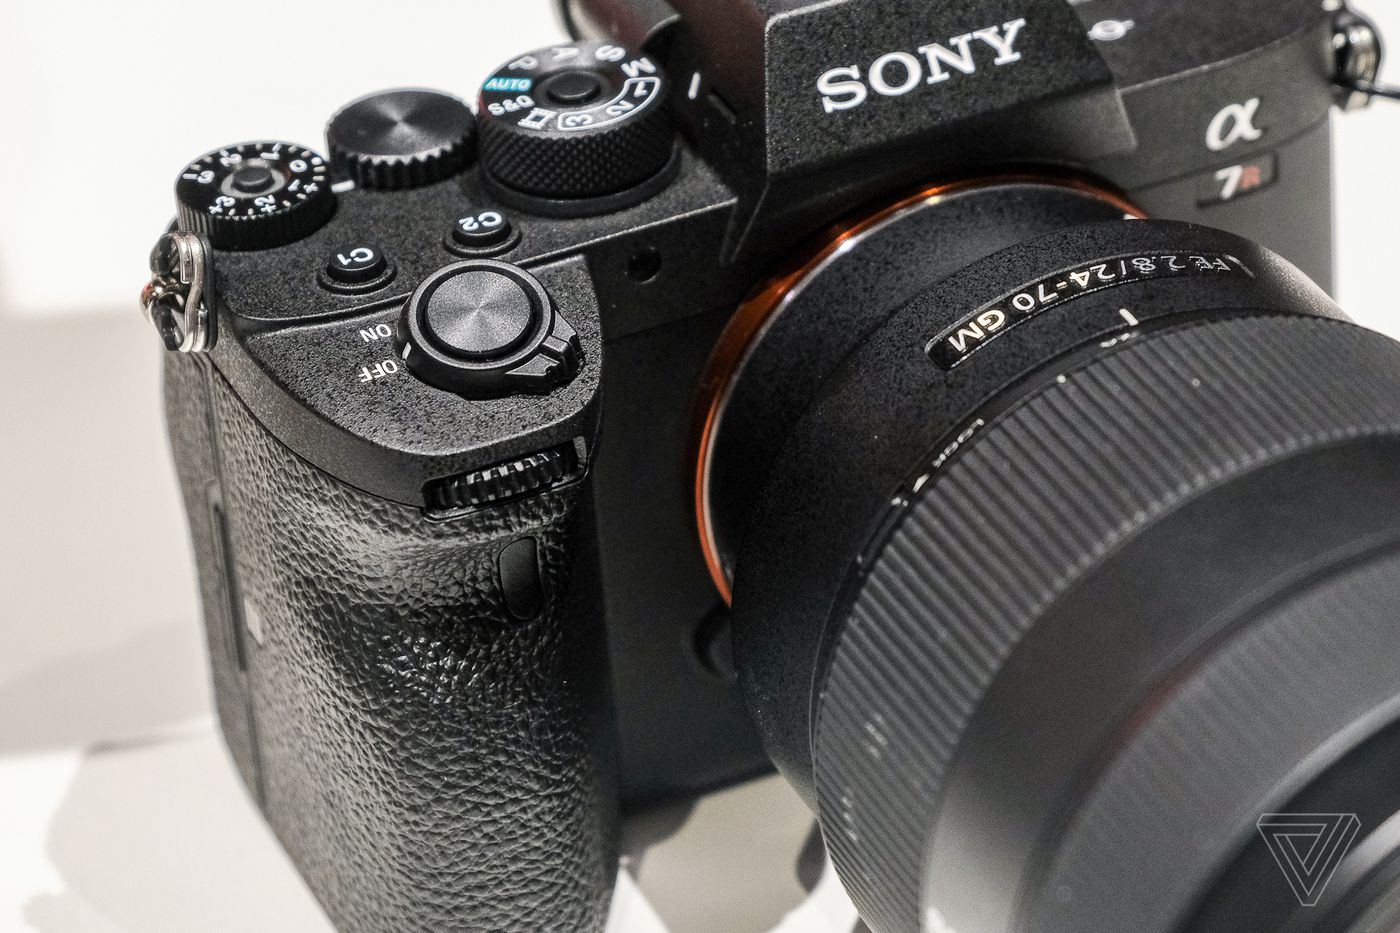 Sony's new A7R IV full-frame mirrorless camera has a monstrous 61